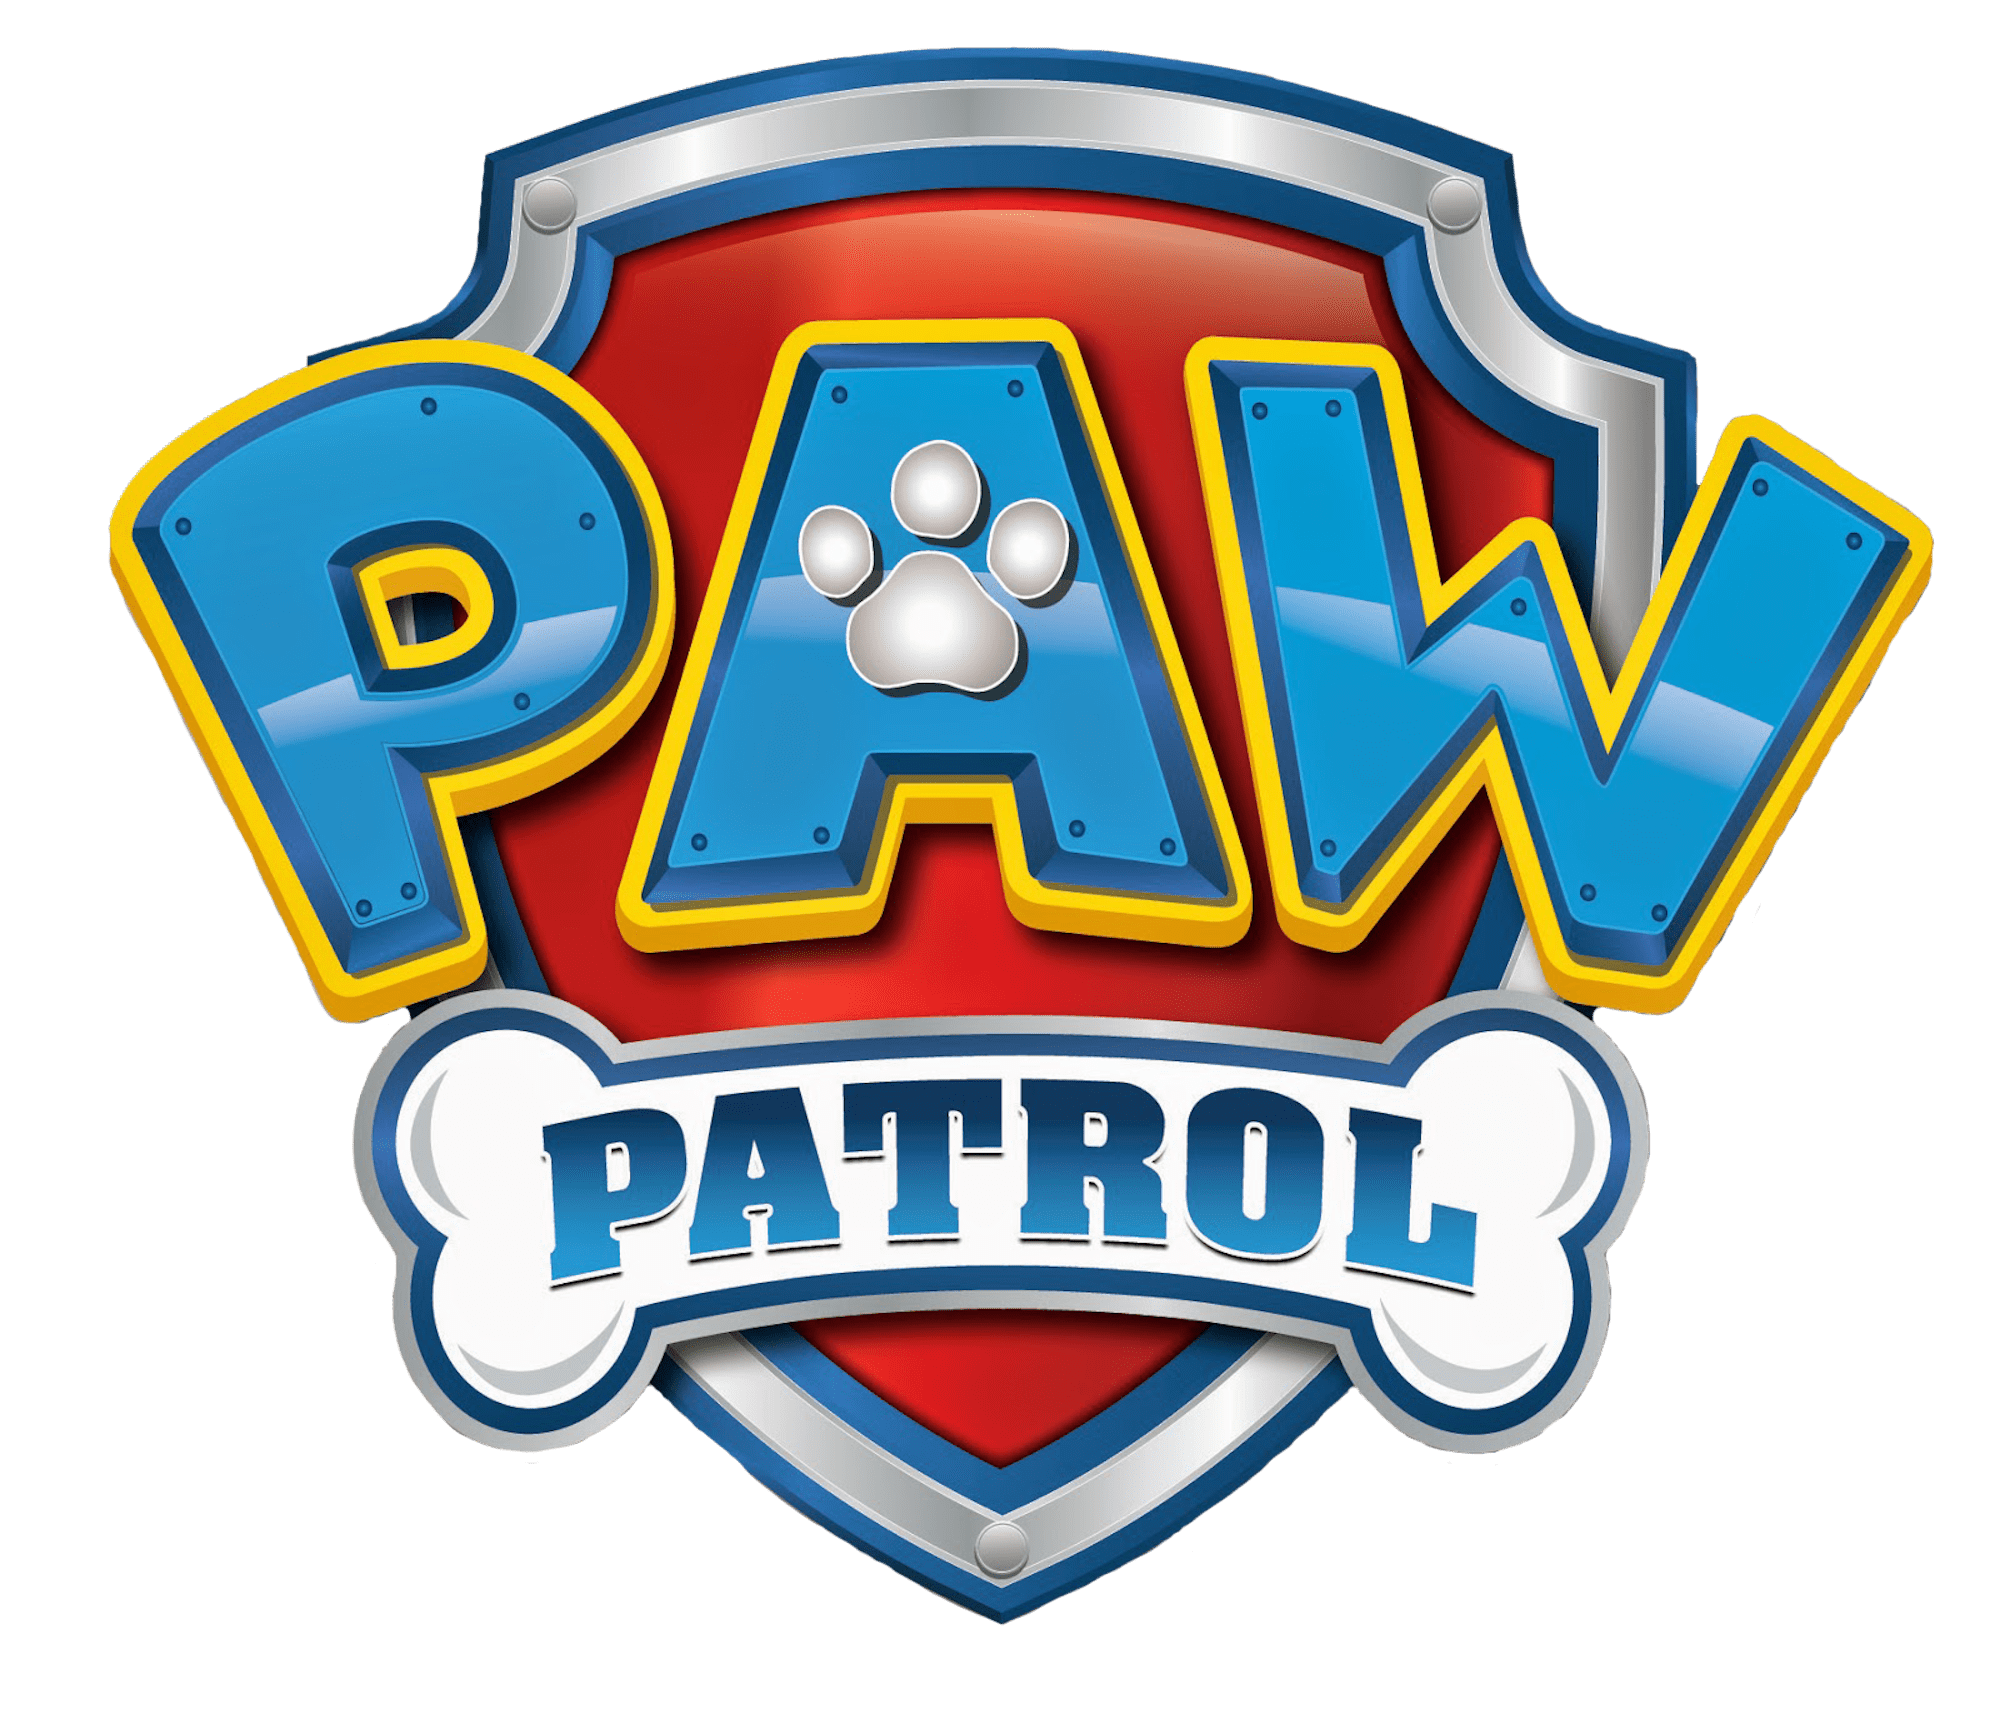 Paw patrol clipart free banner free stock Pawpatrol Logo Png Clipart Paw Patrol Clipart Png banner free stock